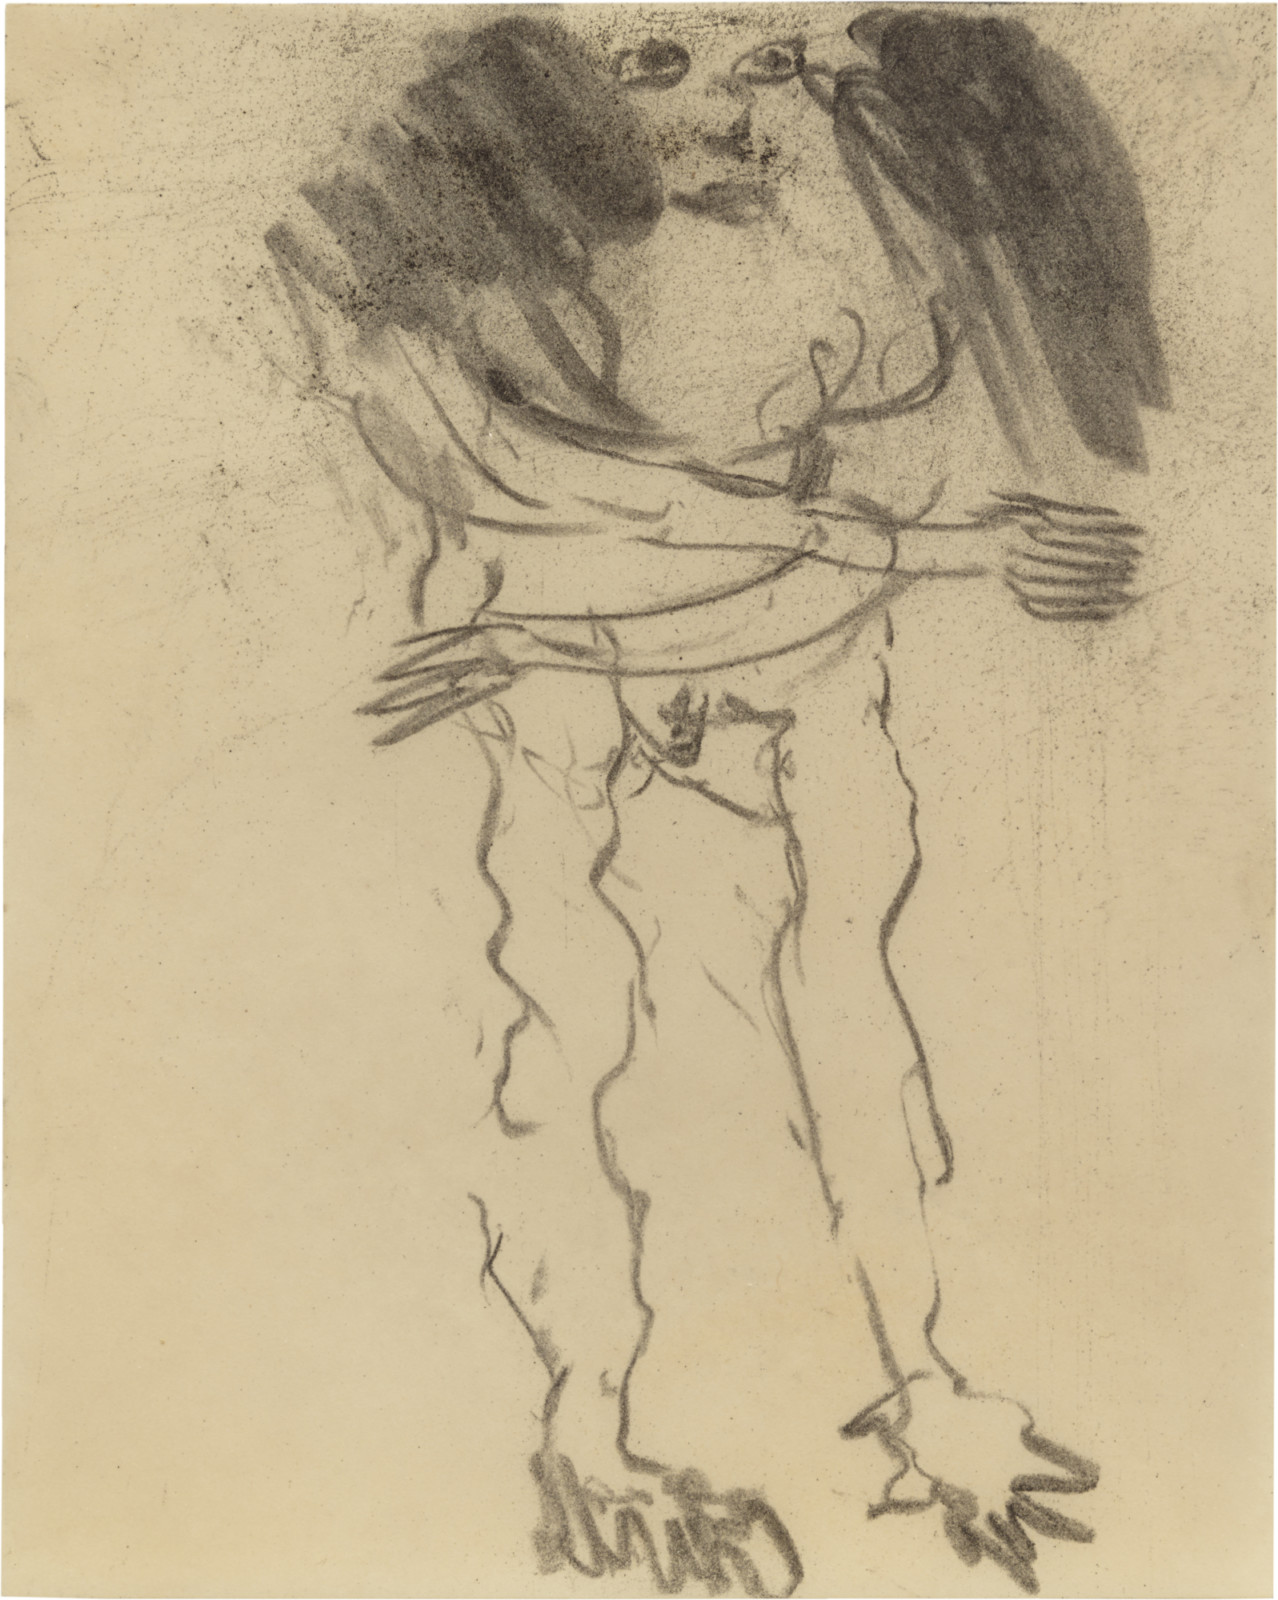 Drawing, dated c. 1966